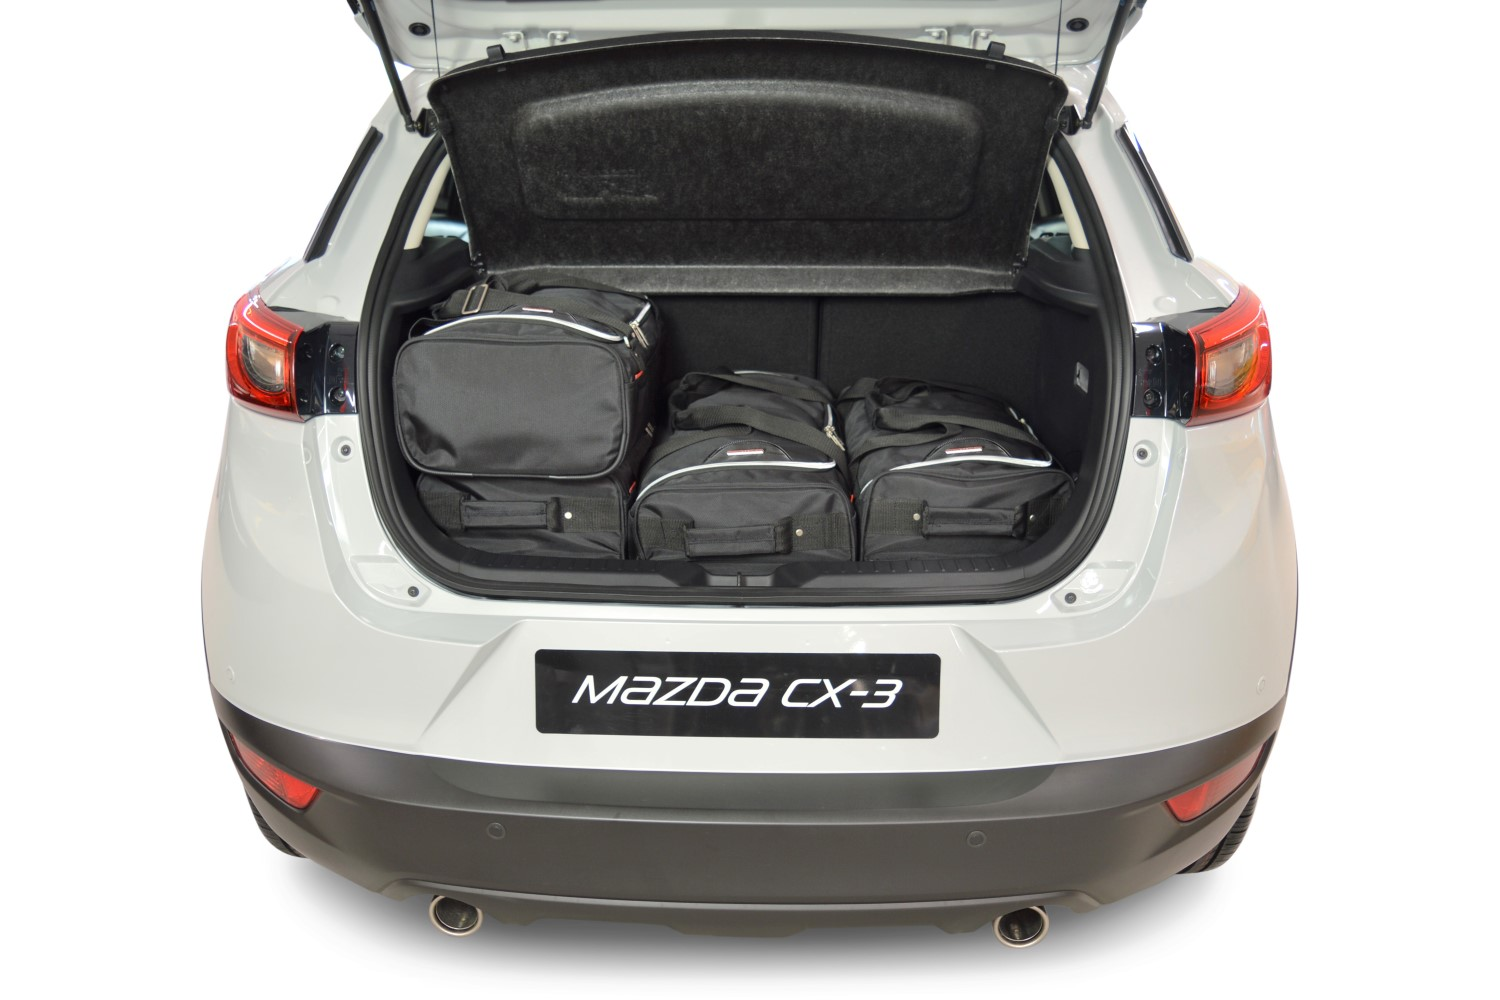 car bags mazda cx 3 reisetaschen set ab 2015 3x47l. Black Bedroom Furniture Sets. Home Design Ideas